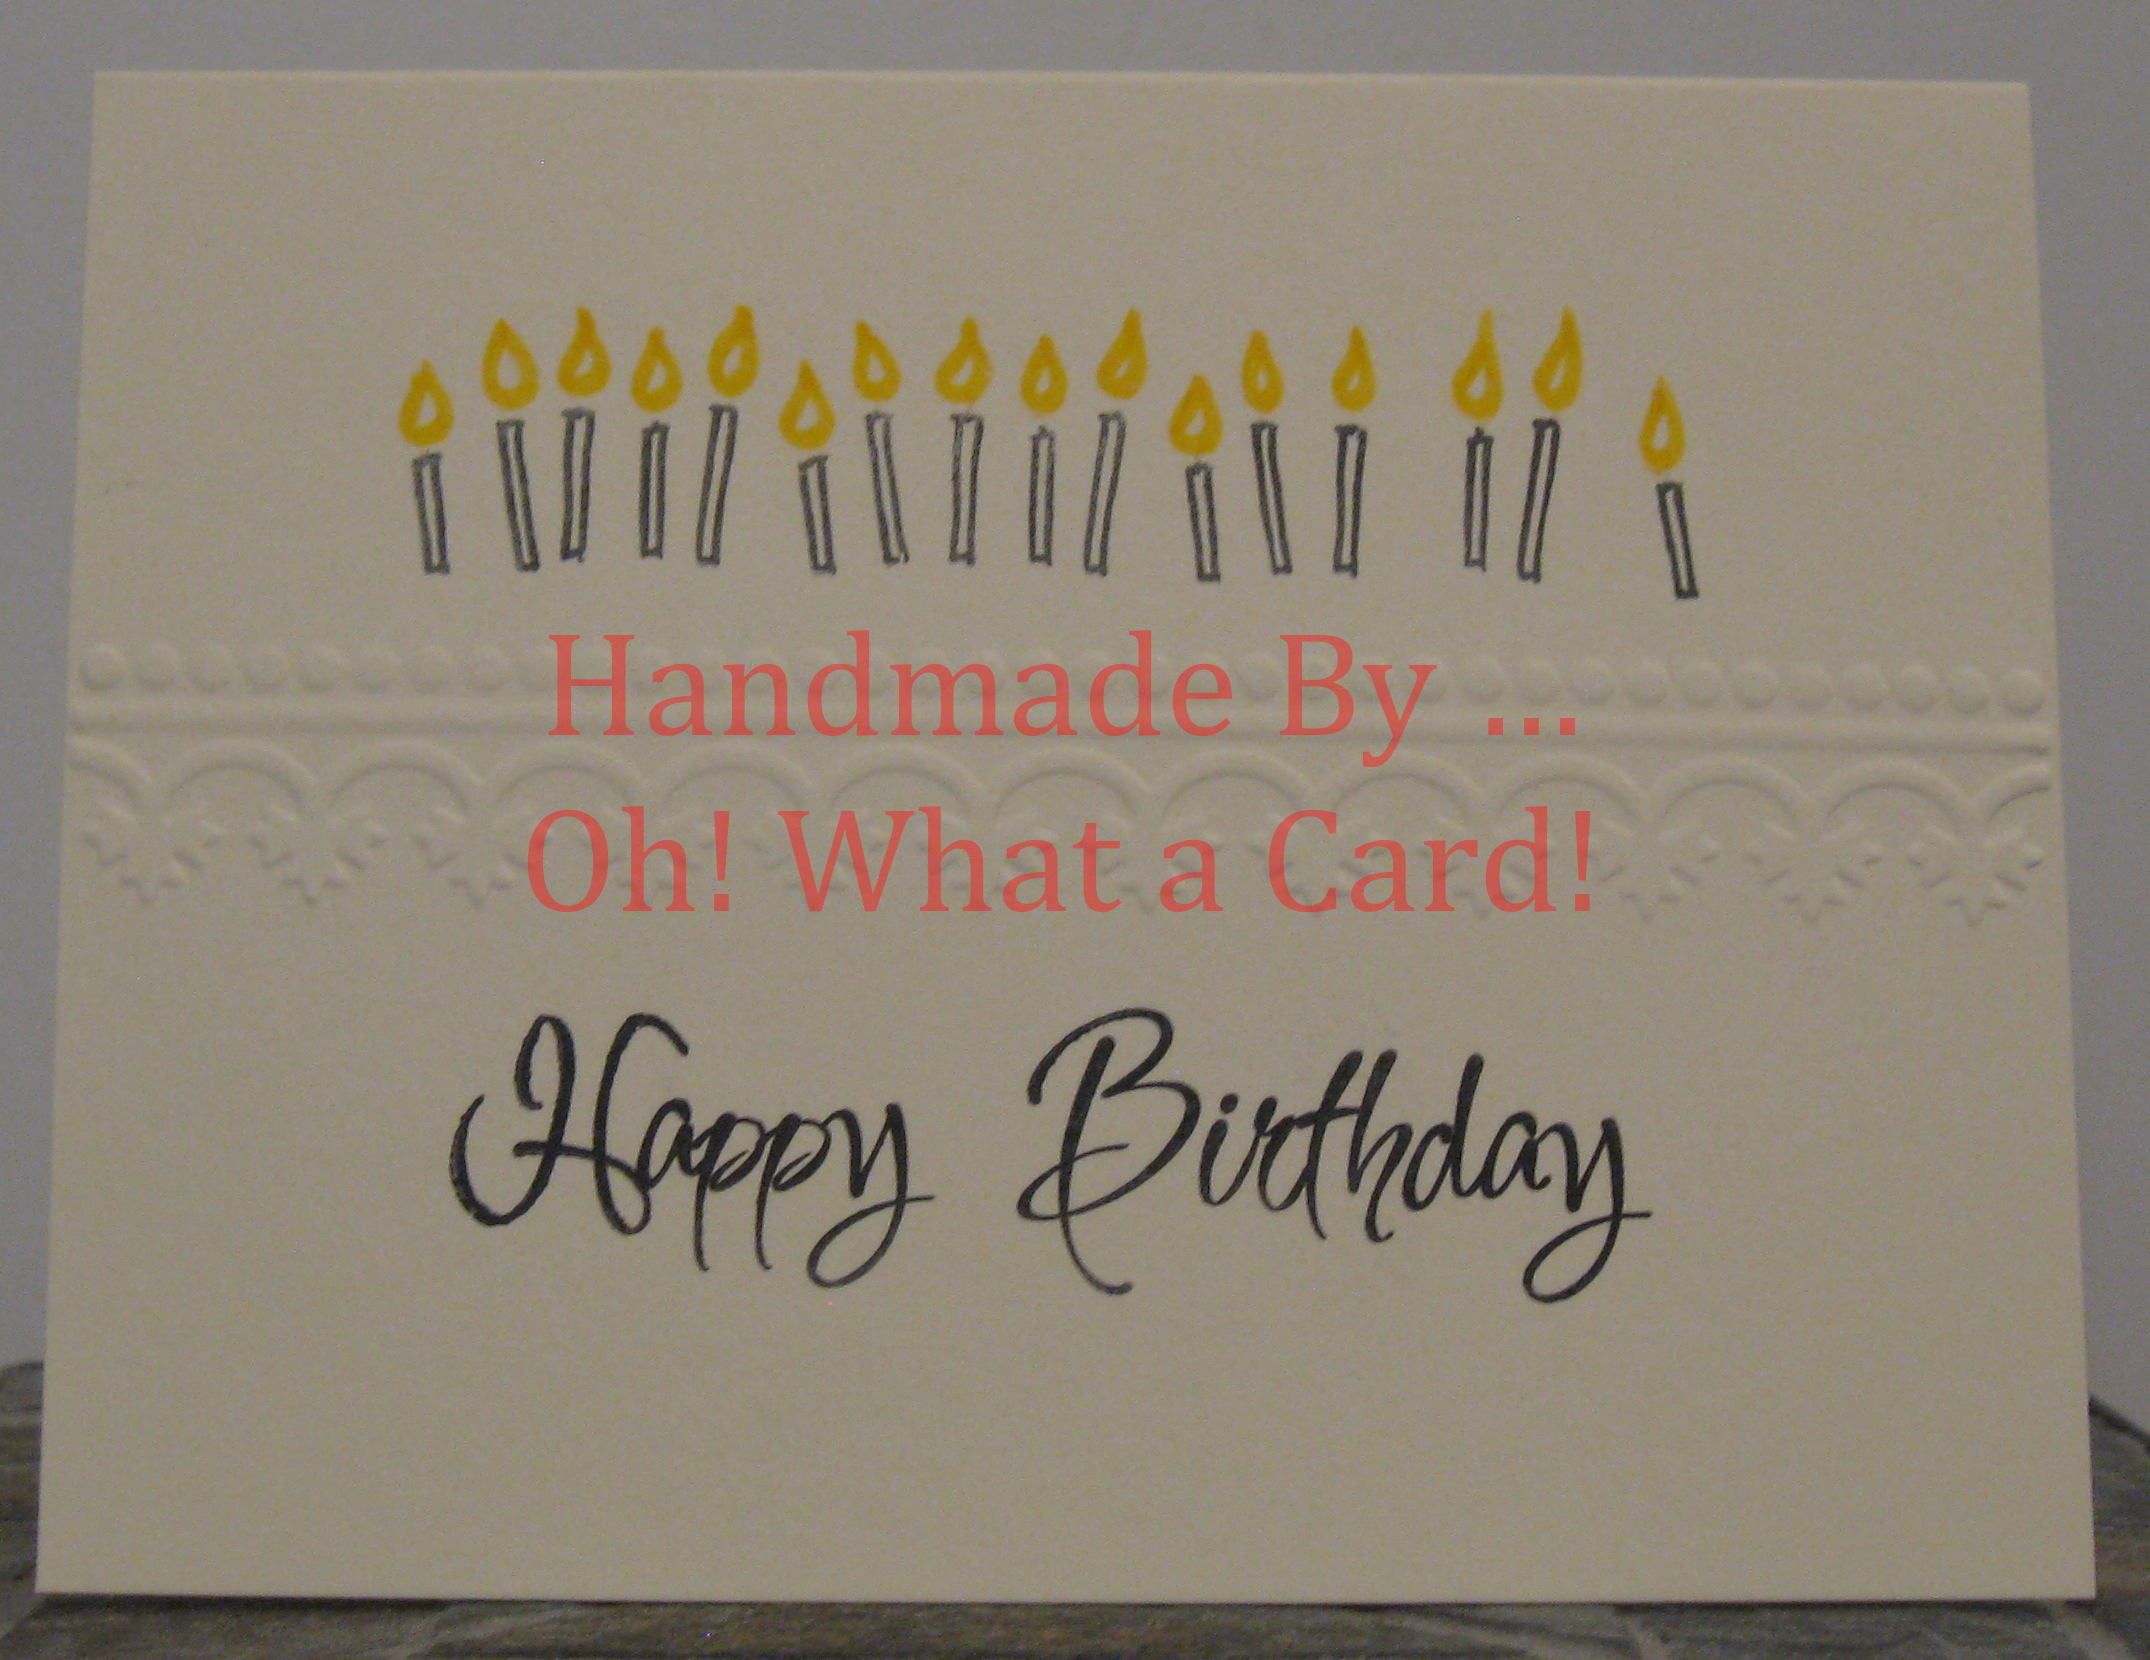 Happy Birthday Candles - Beige Card